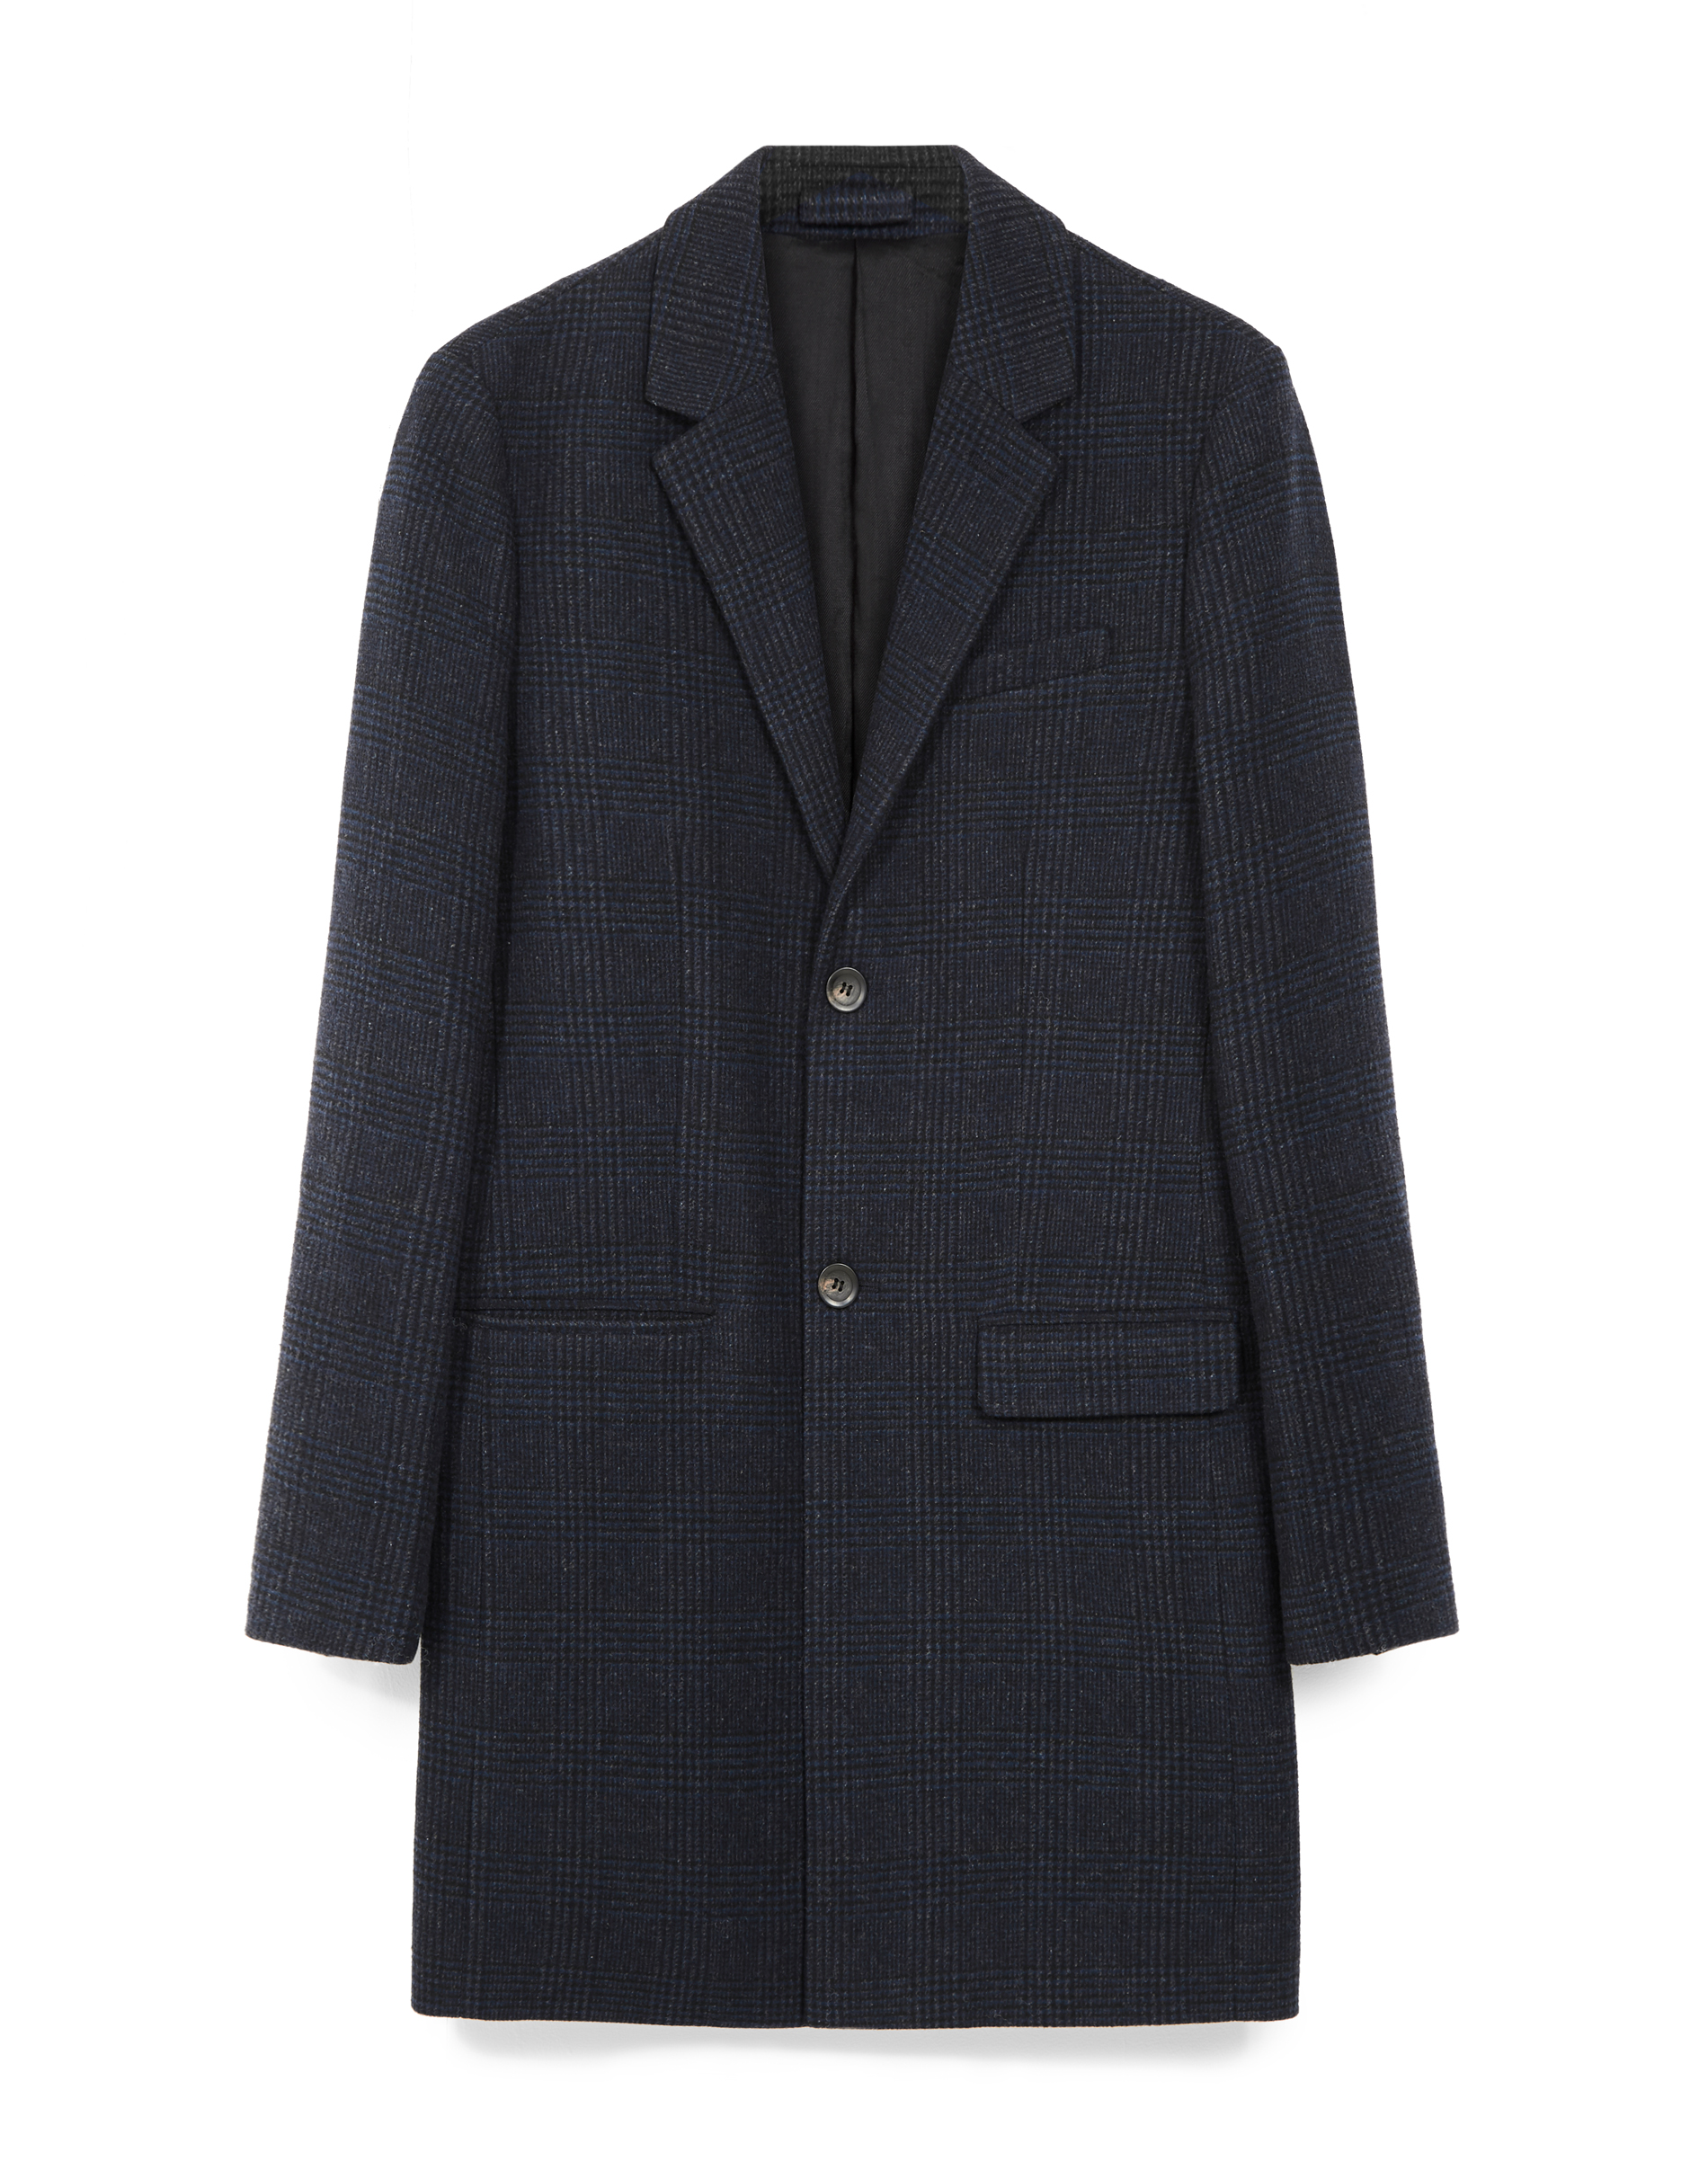 MVP Grey Check Greenwood Single Breasted Wool Blend Check Coat